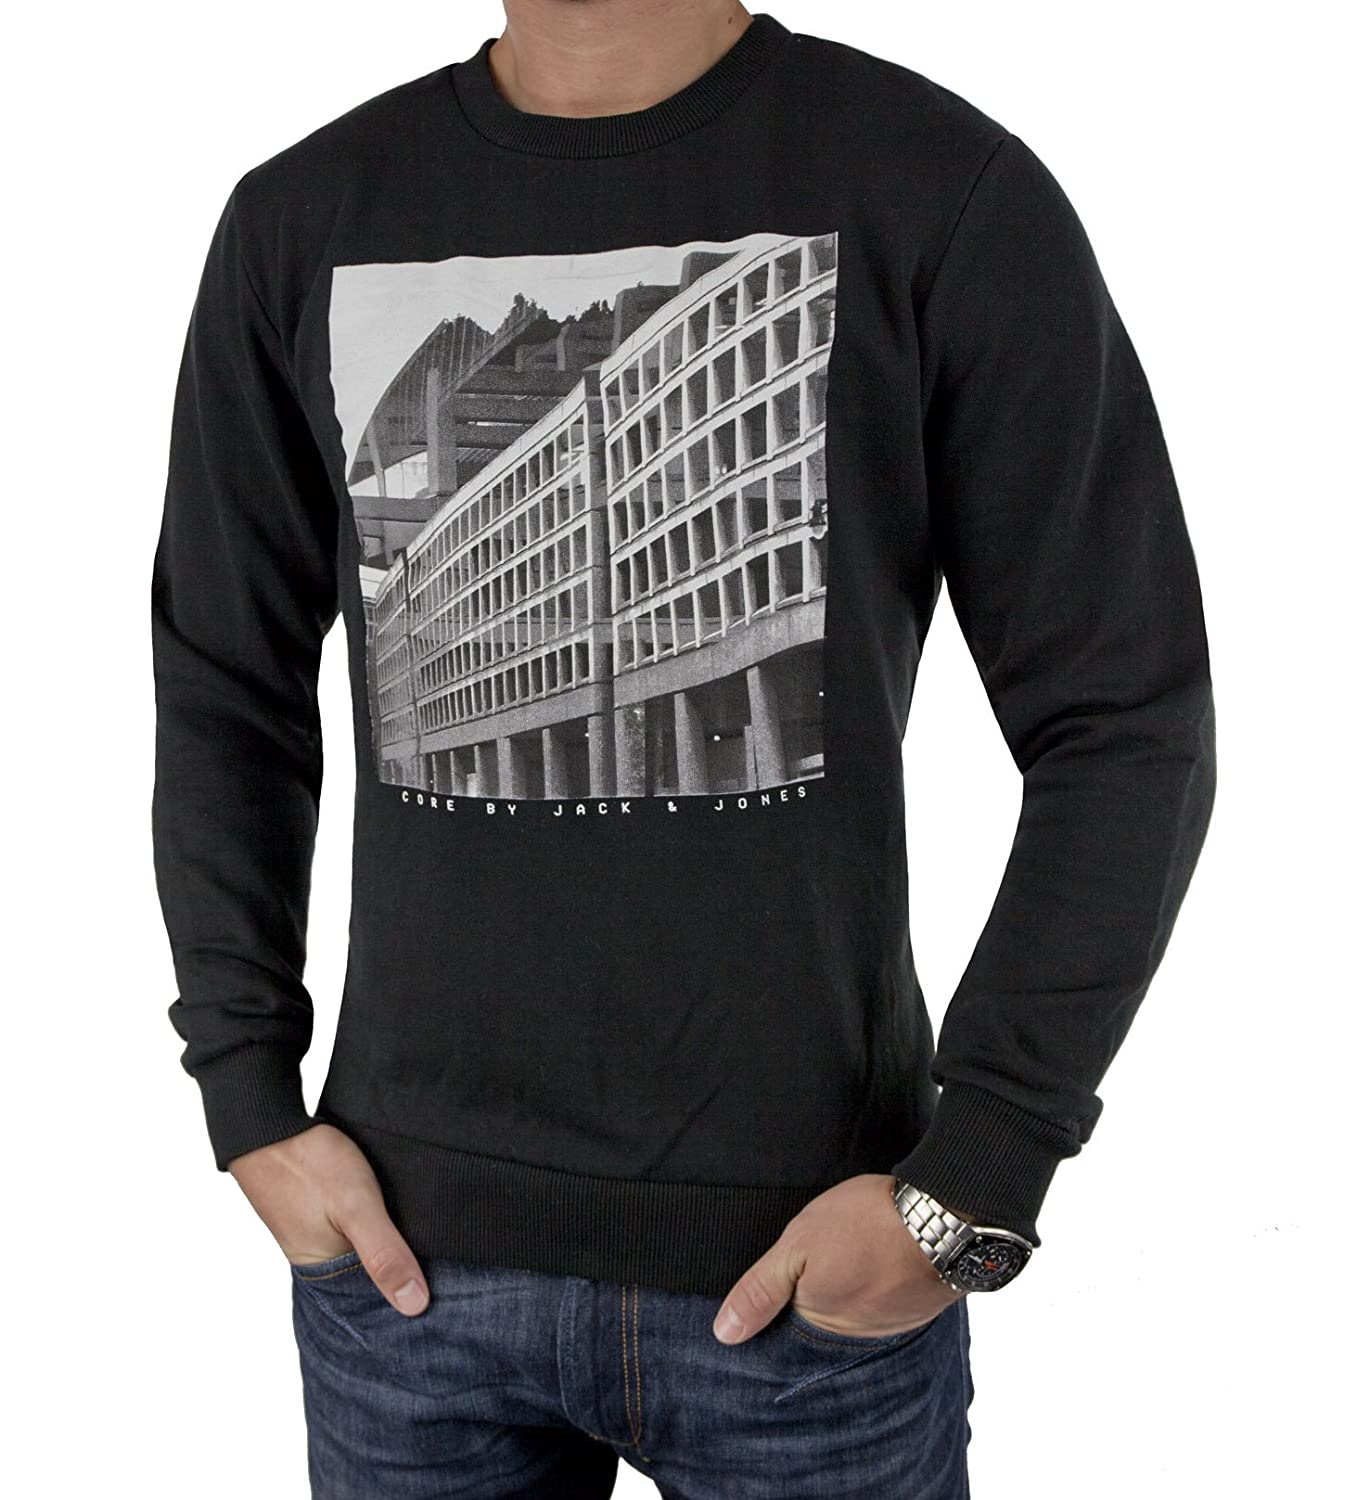 Jack & Jones GUZEL Sweat Crewneck 12088120 Core Sweatshirt Pullover Grey günstig bestellen